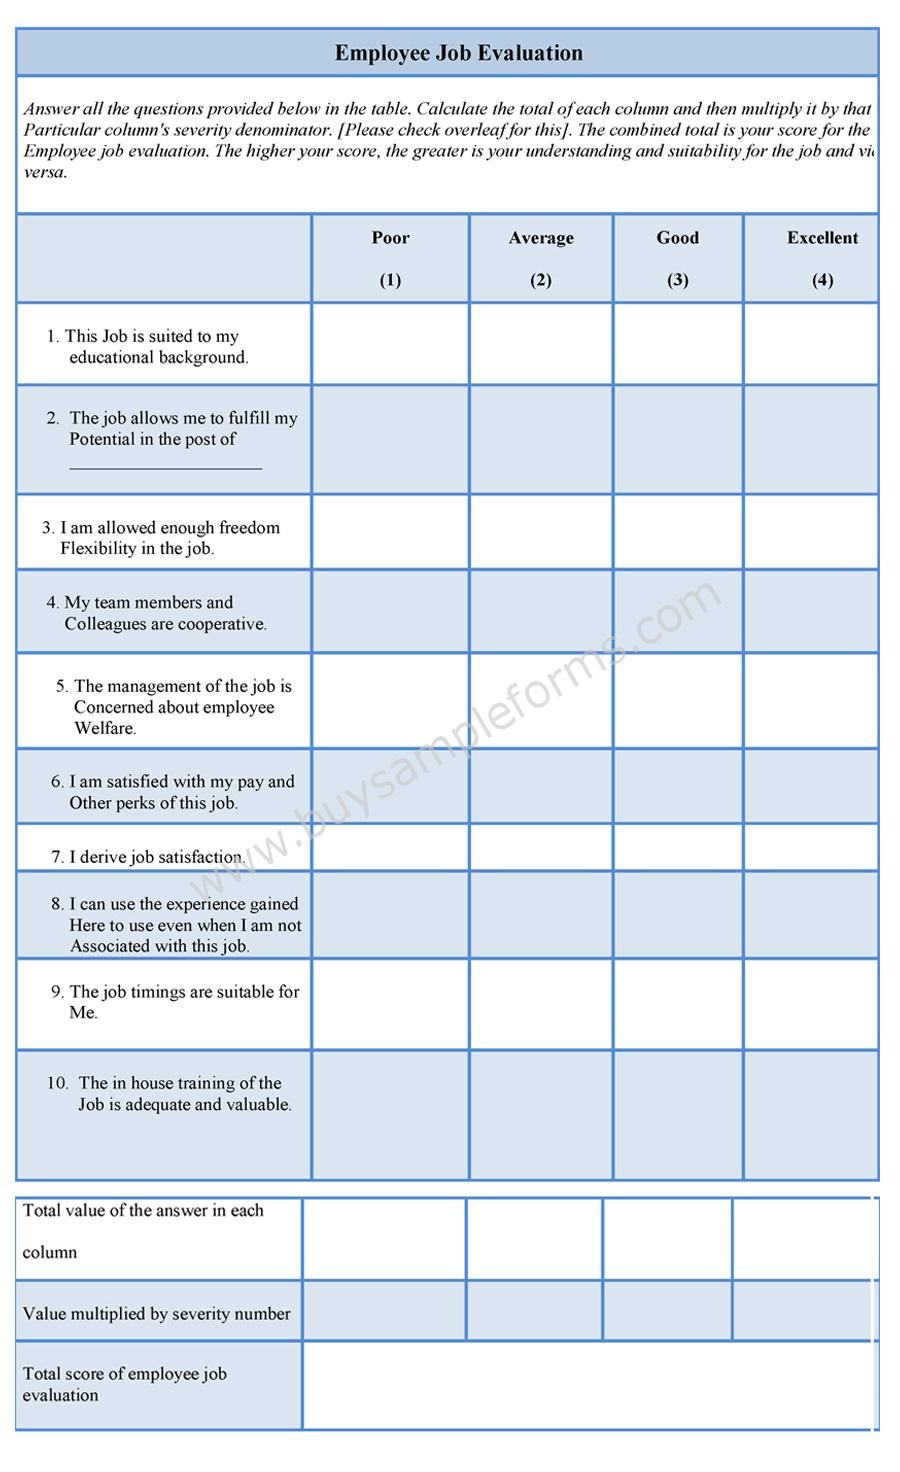 Employee Job Evaluation Form | Sample Forms